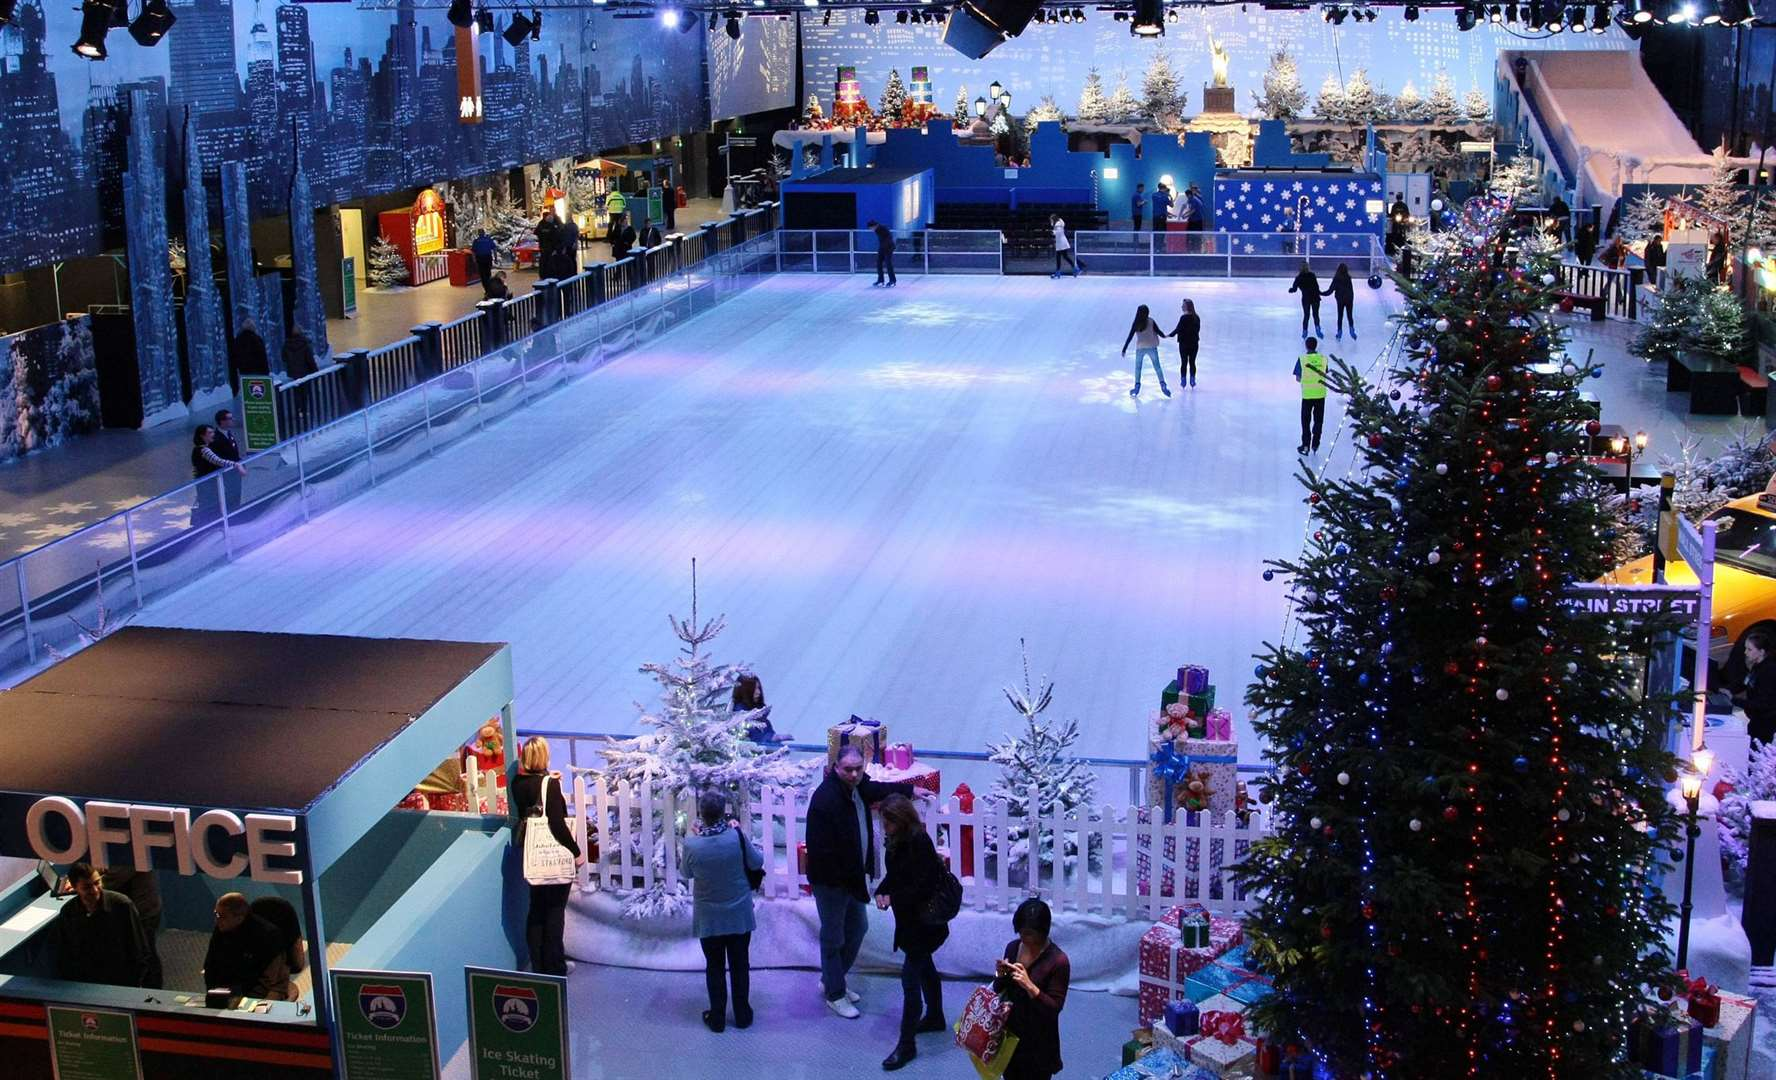 An ice rink similar to that at Bluewater will be in the Dane John Gardens later this year. Photo: Hugo Philpott/PA Wire